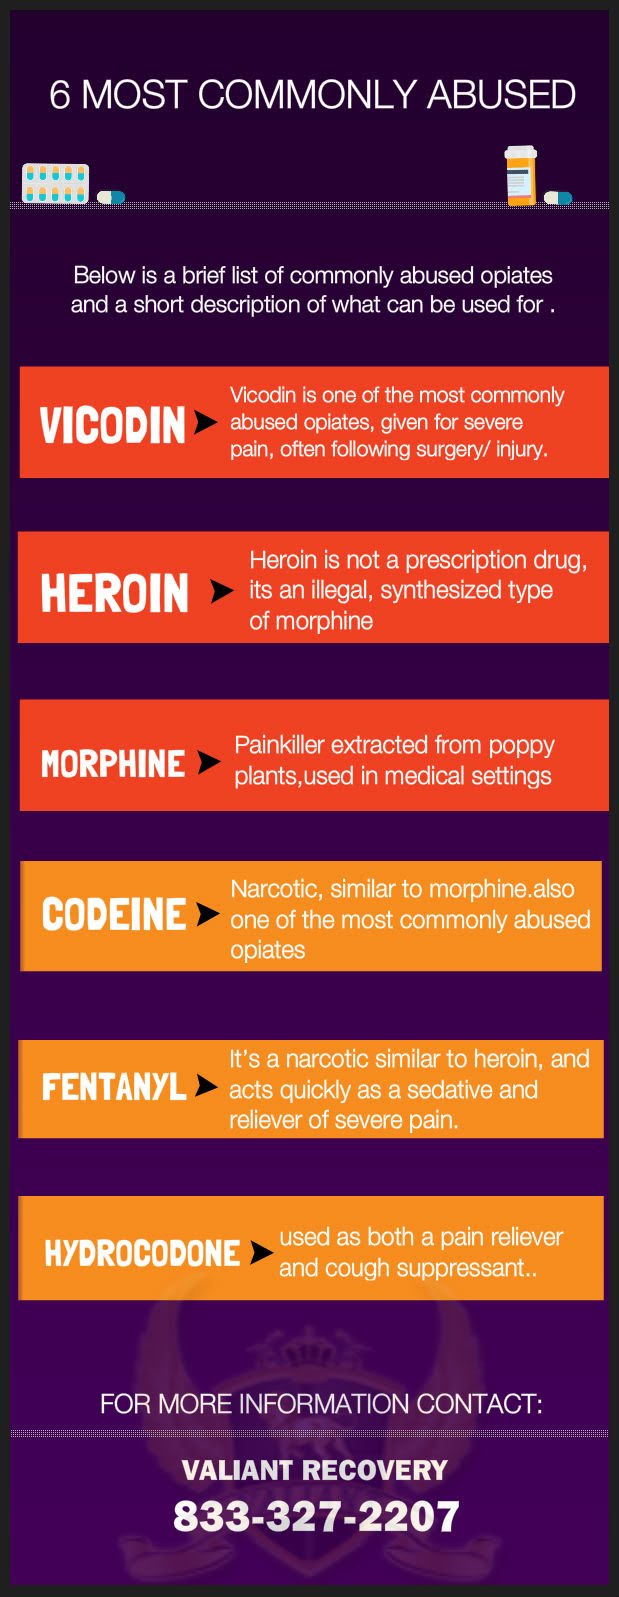 6 of the most commonly abused opiates - infographic